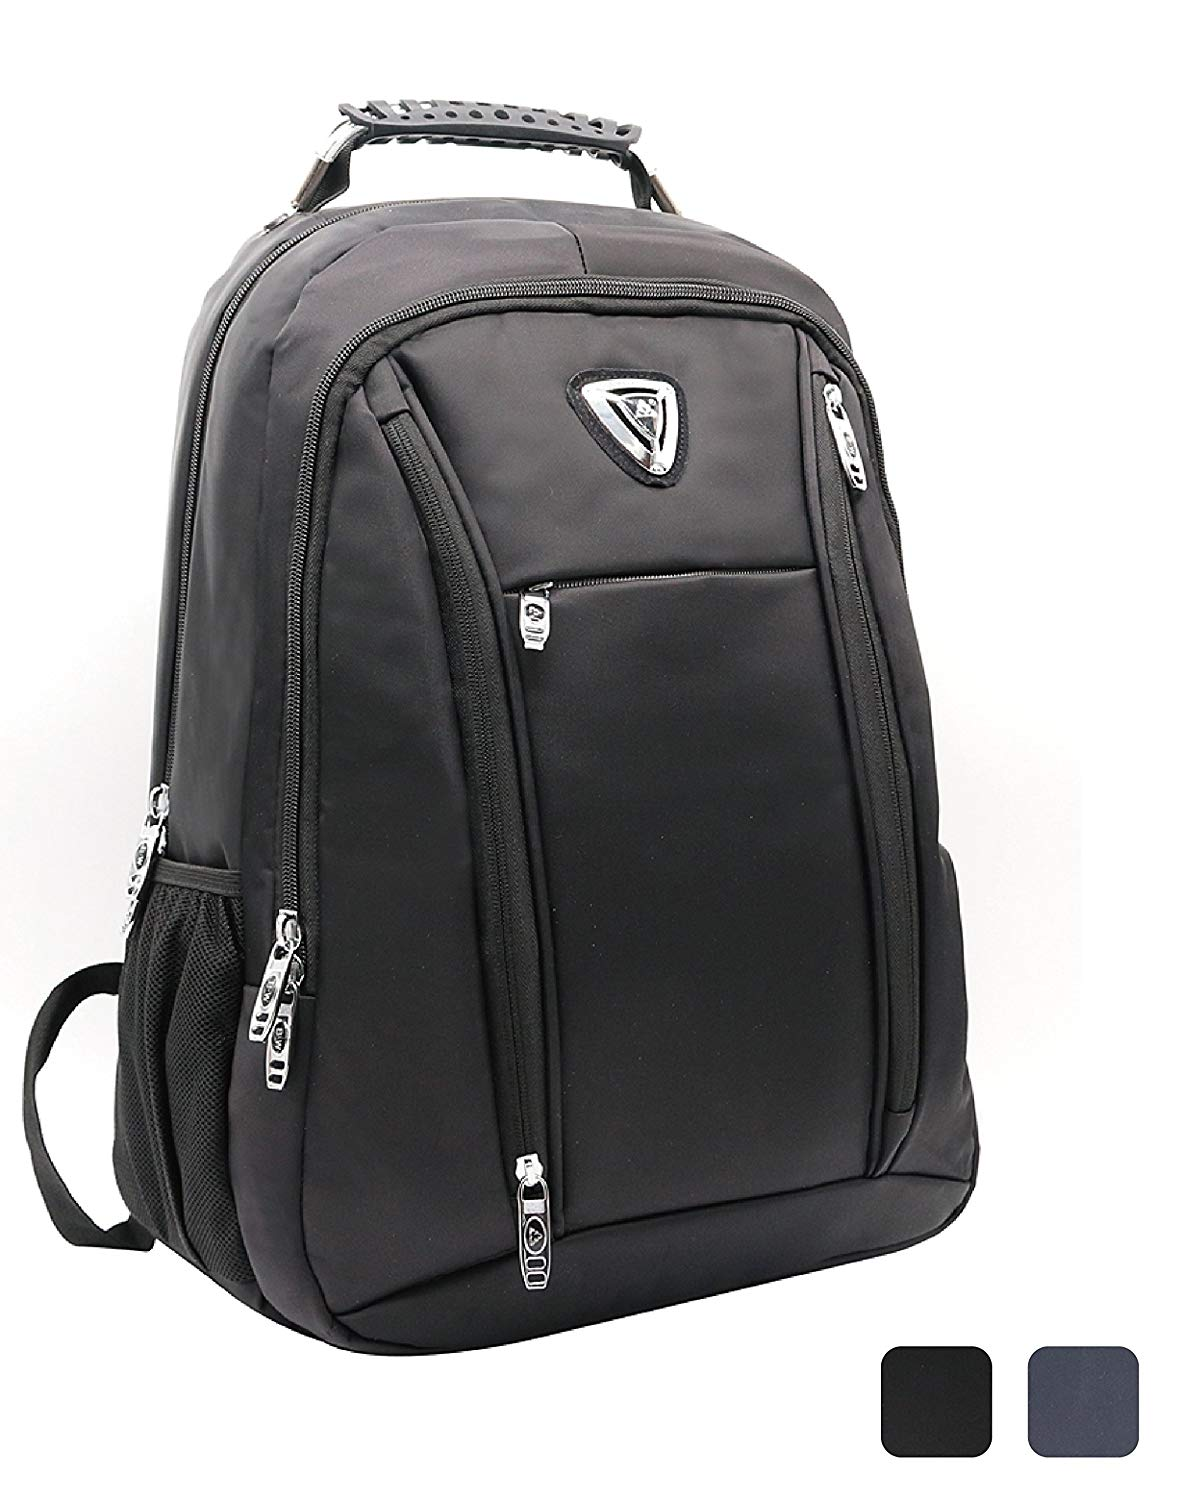 Laptop Backpack Business Backpack Travel Backpack Computer Bag with Lightweight & Water Resistant Multi Fuctional Daypack For Men & Women, Fit 15.6 Inch Notebook & Laptop. (Black)